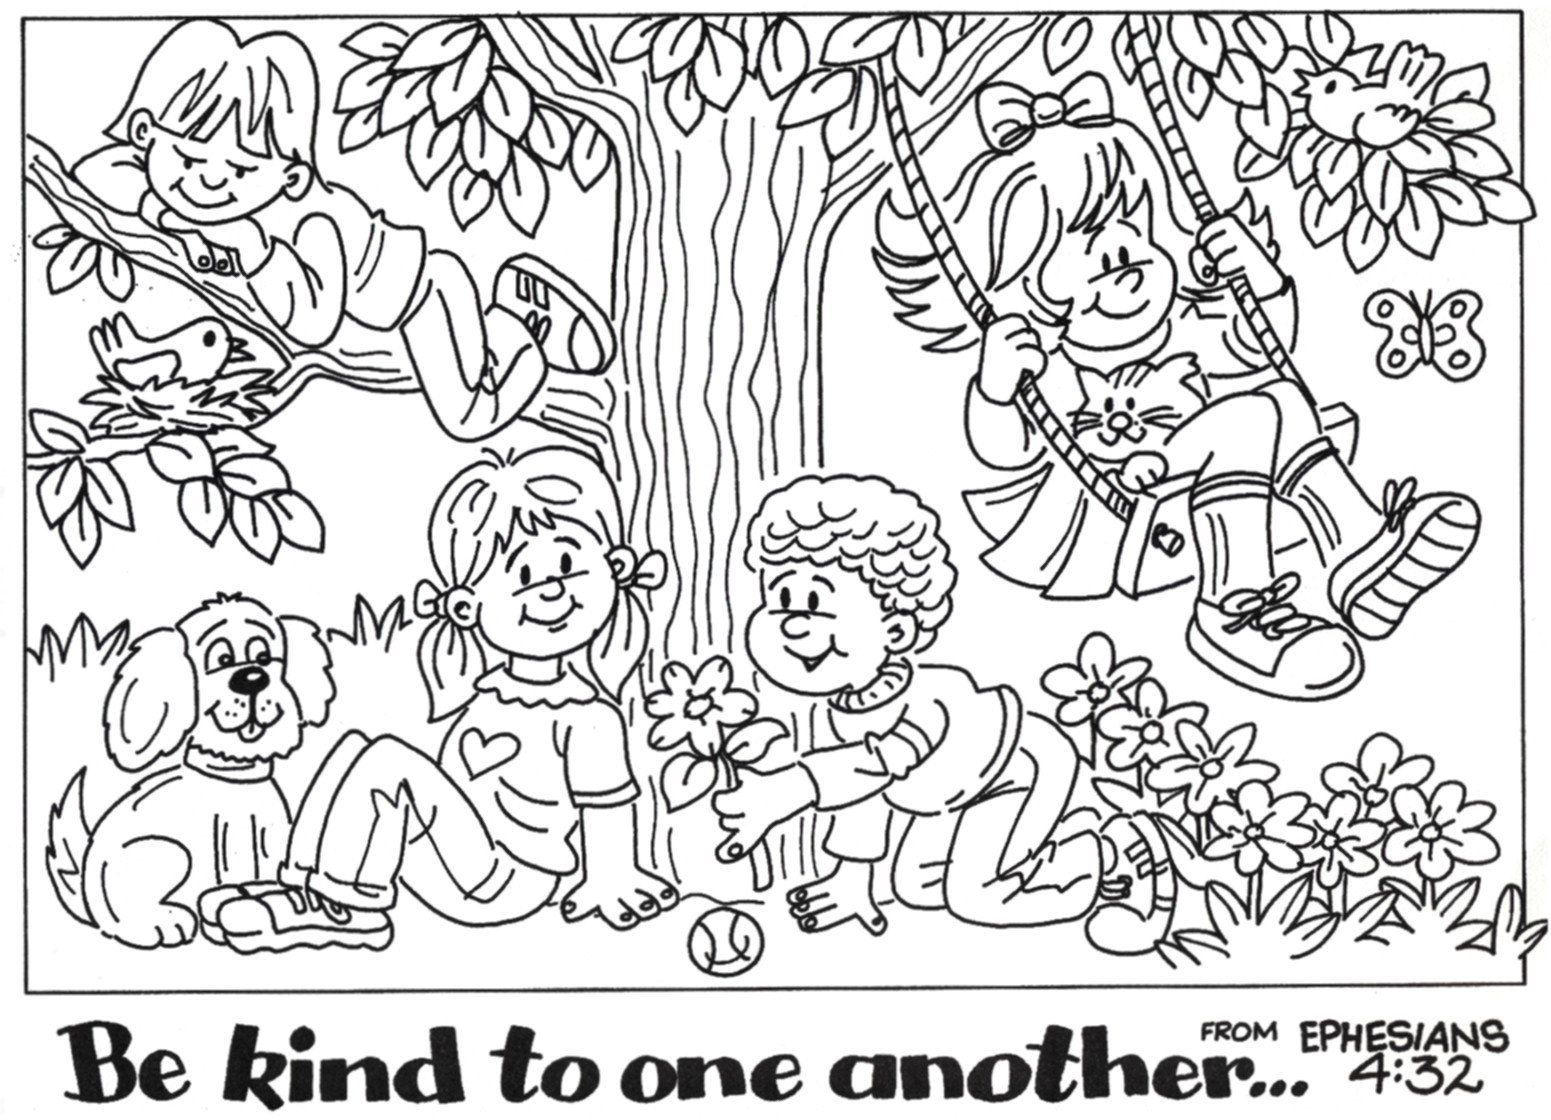 coloring pages about friendship - bible coloring pages friendship printables and encouraging words pinterest friendship